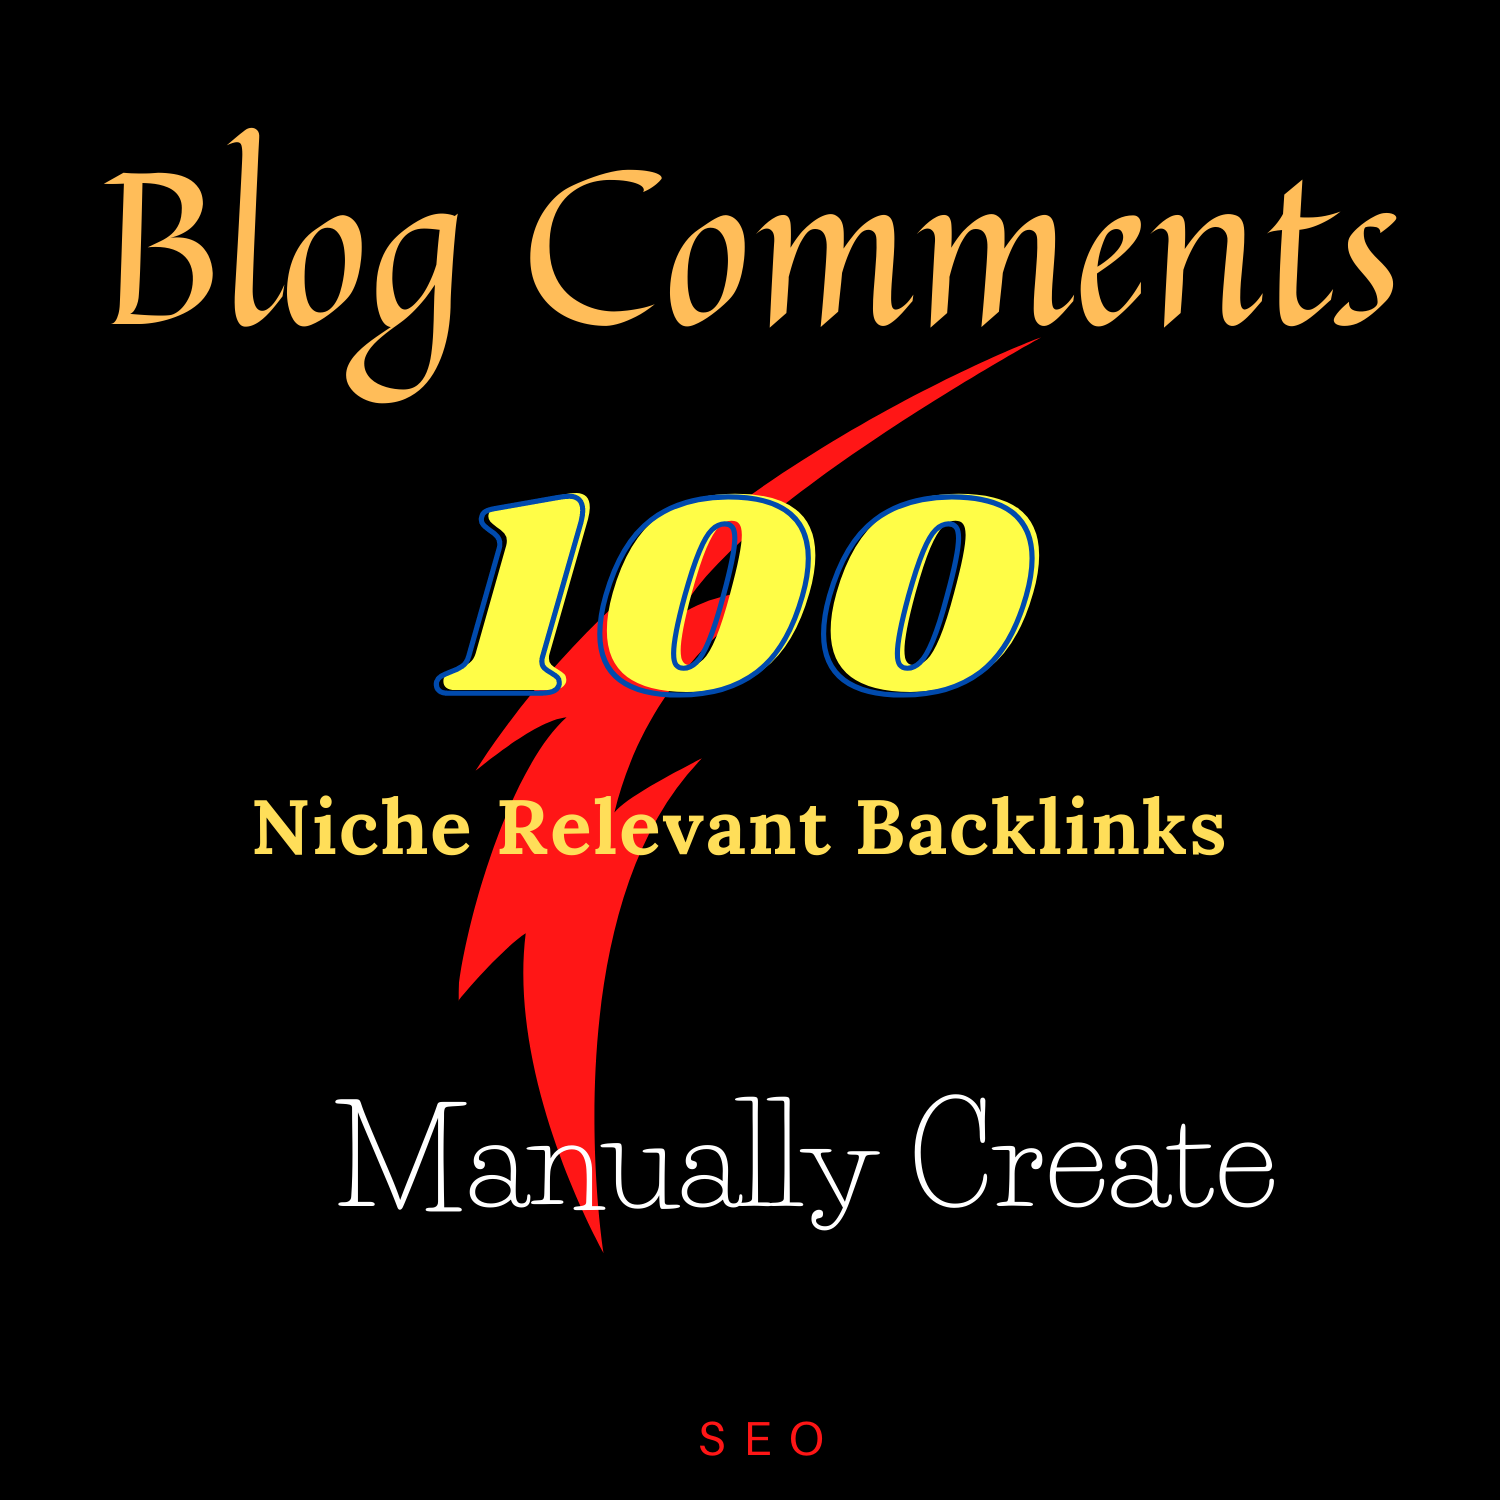 100 blog comments backlinks niche relevant manually create